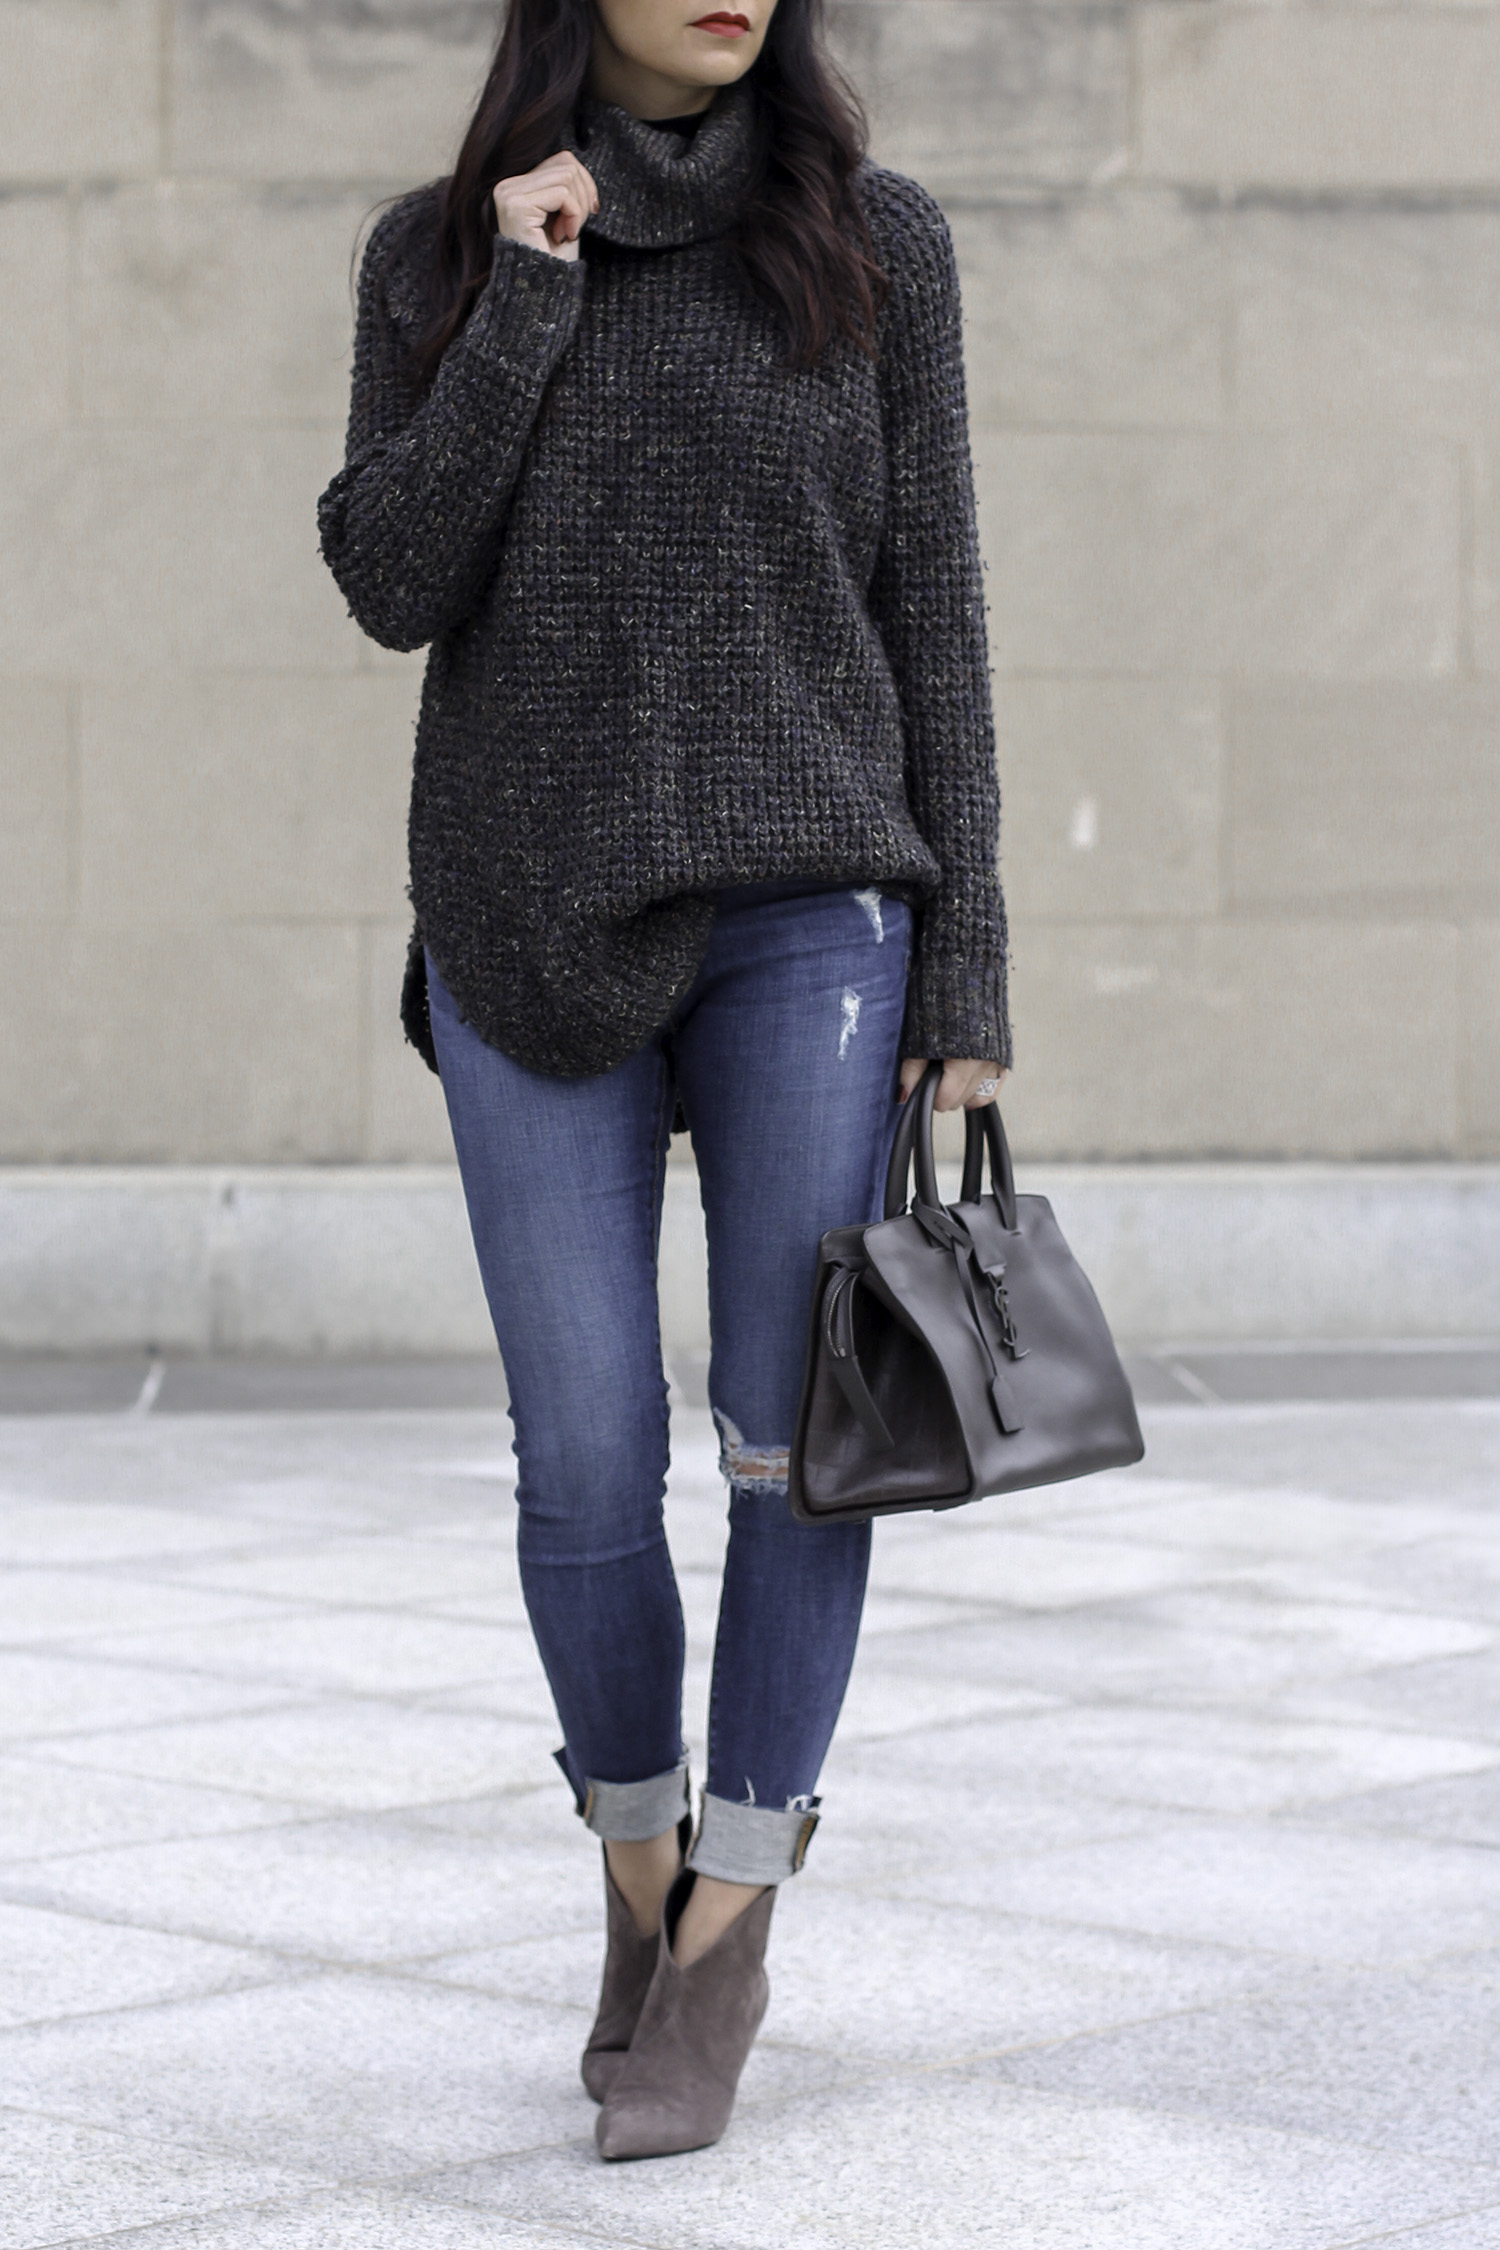 Free People Sweater, Cableknit Sweater, Saint Laurent Boots